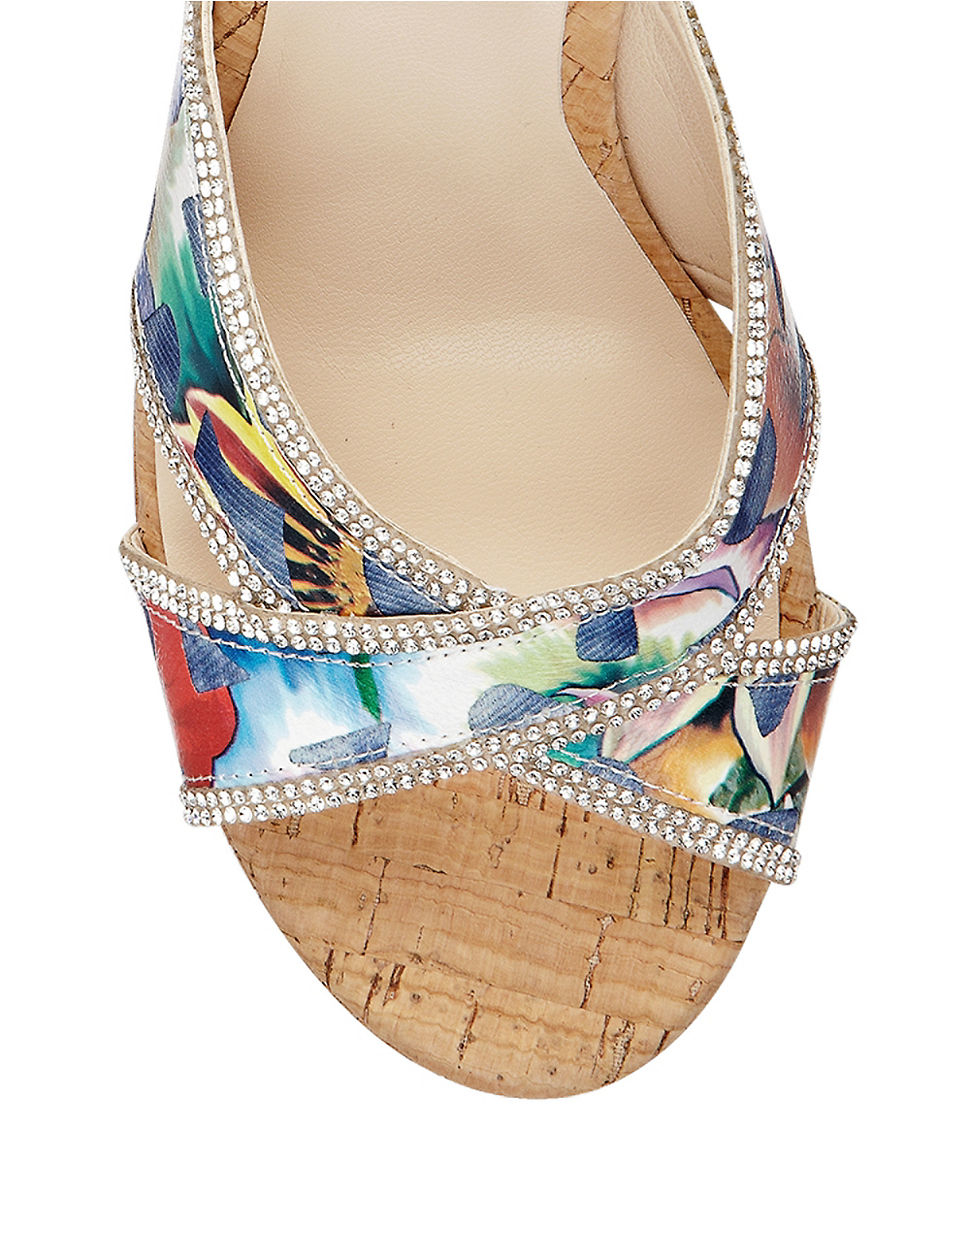 d8279edae19 Guess Eleonora Cork Platform Wedge Sandals in Blue - Lyst